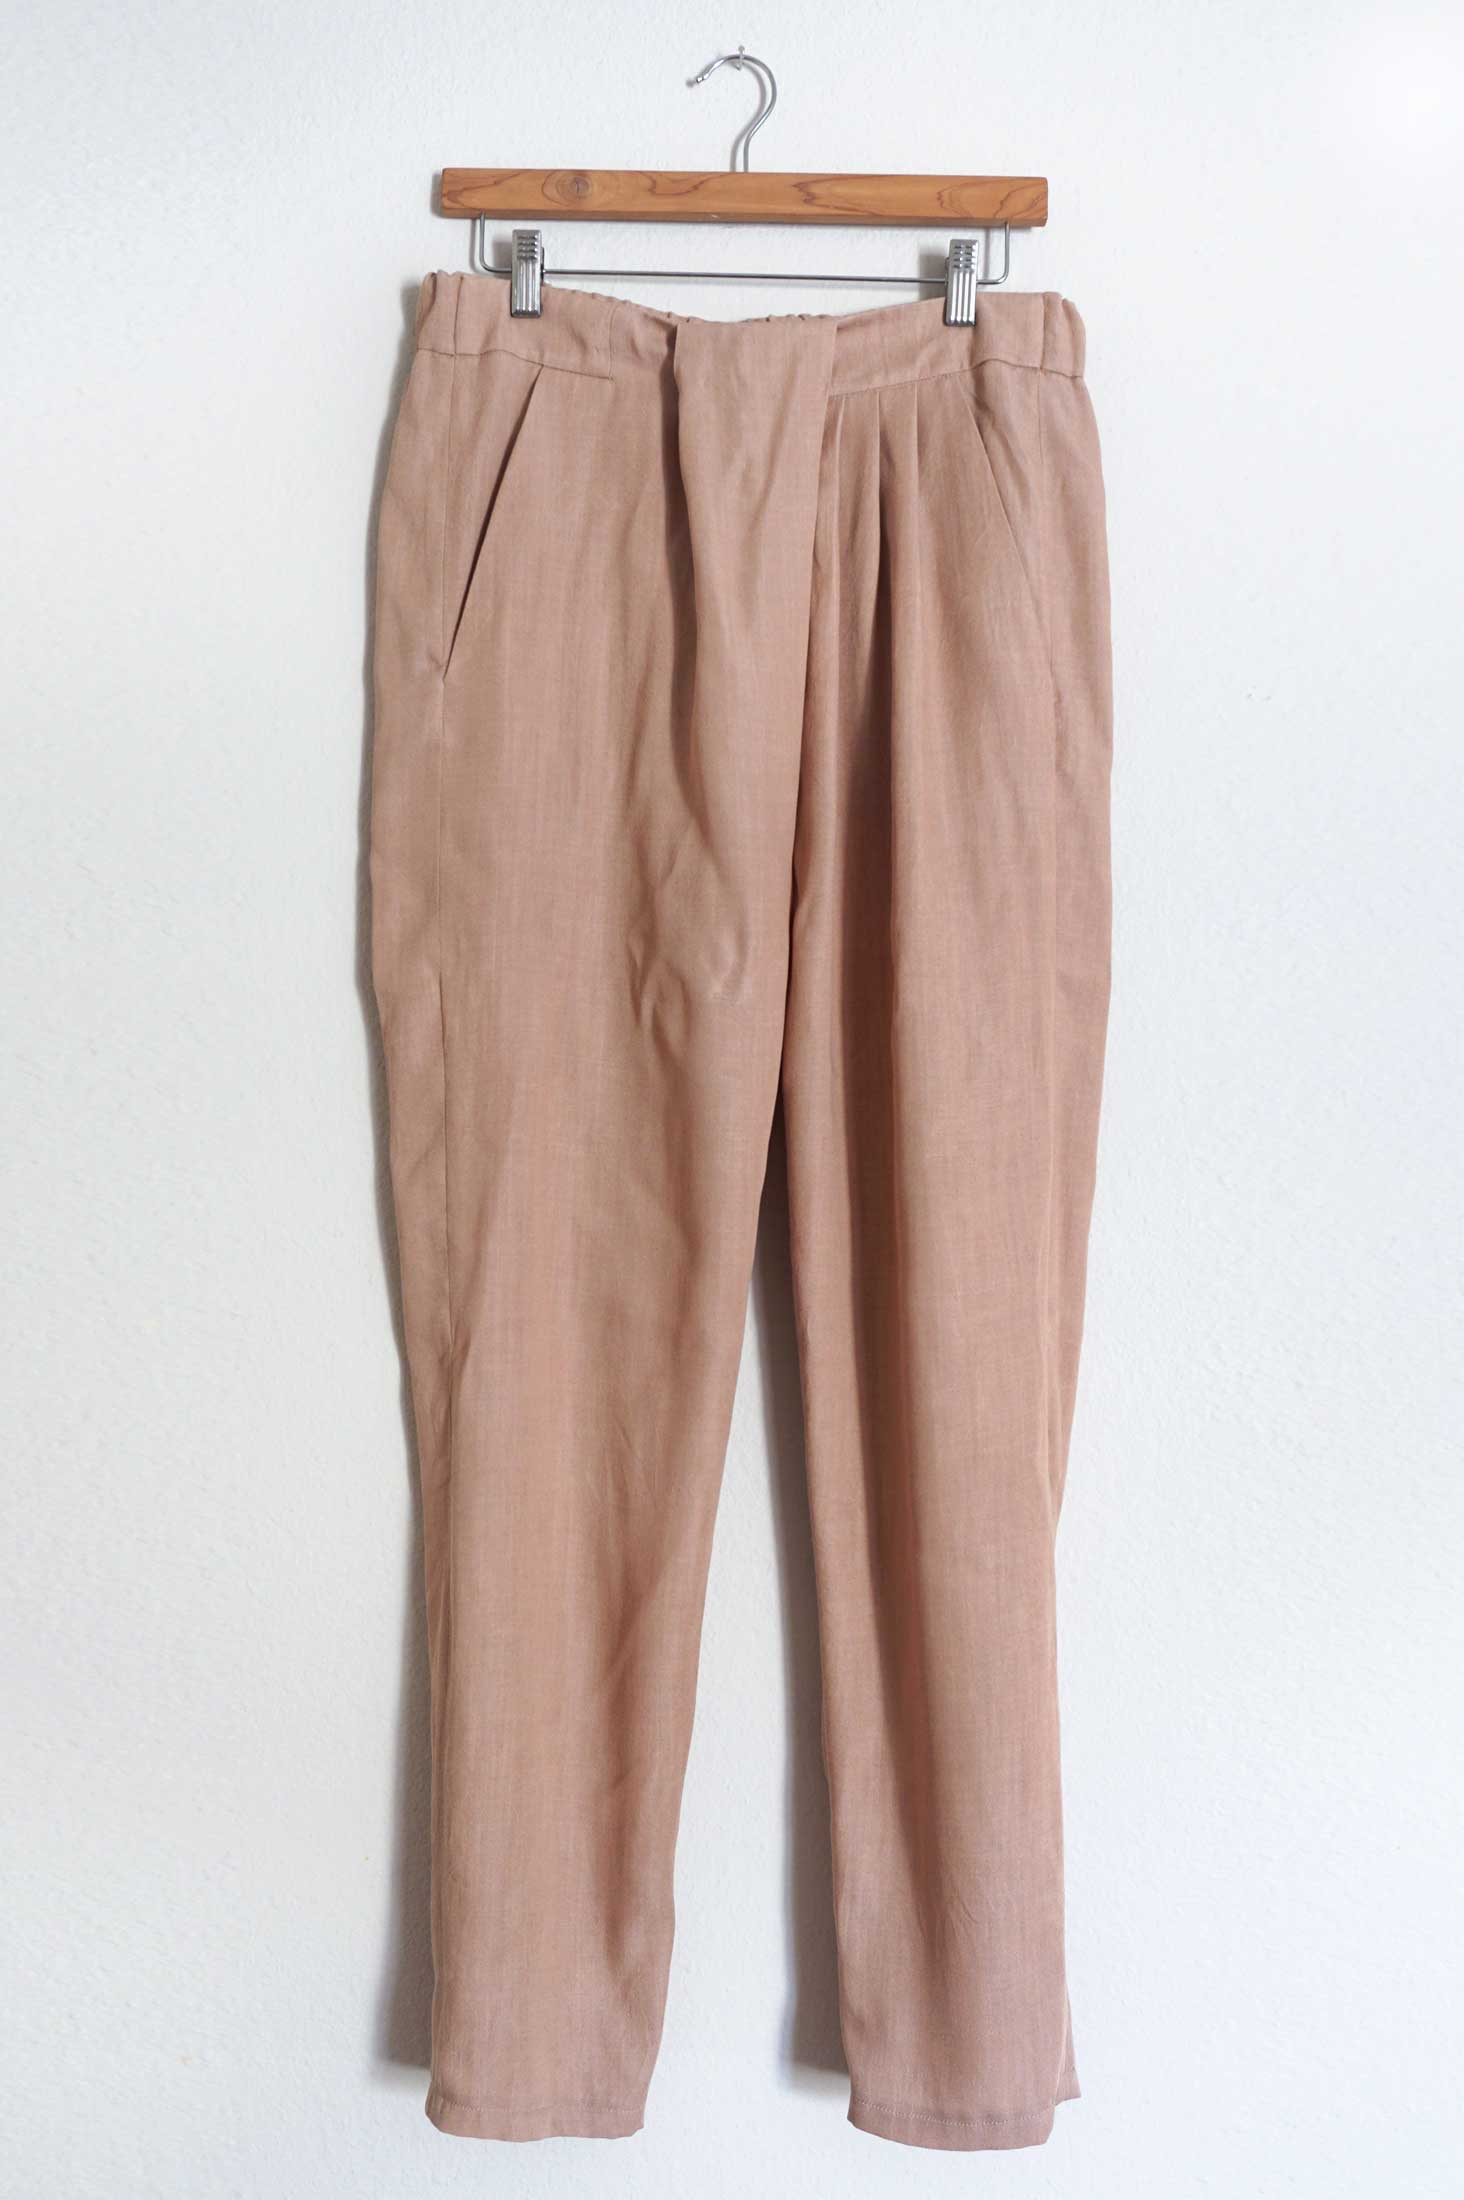 DIY Pleated Pants – Review of the Ebony Pant Pattern by StyleArc | Sew DIY